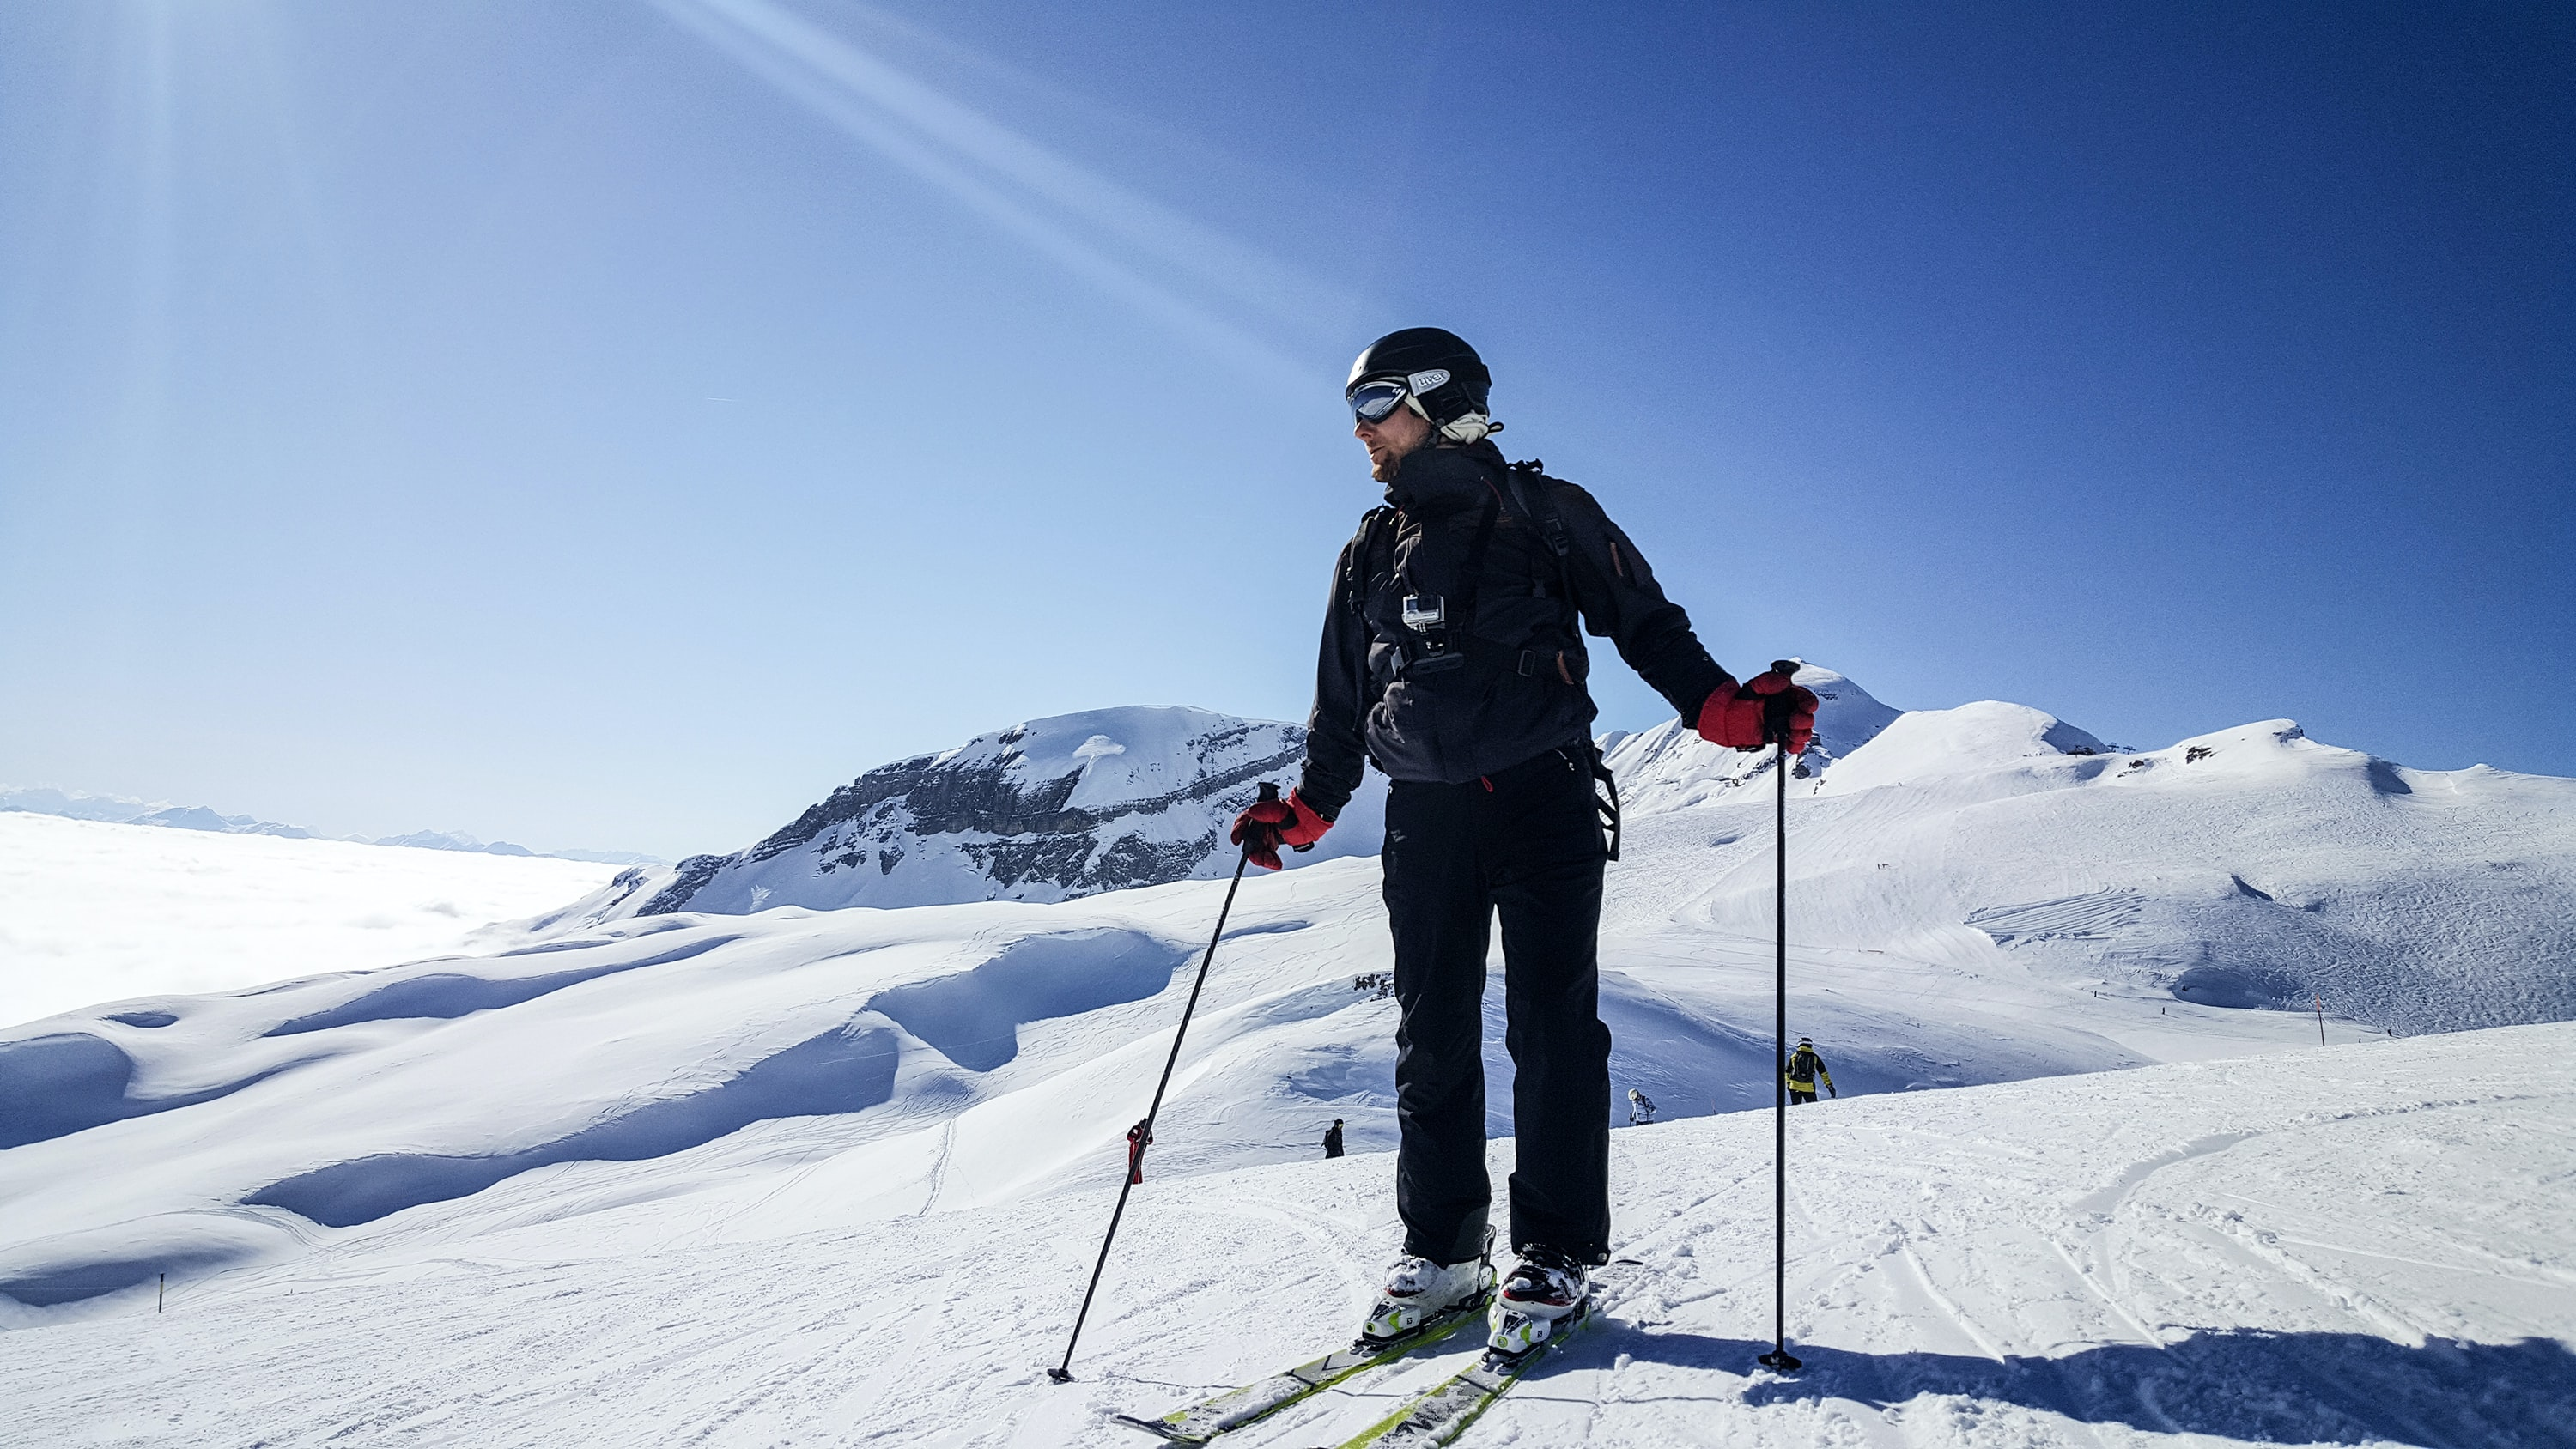 man skiing under clear blue sky